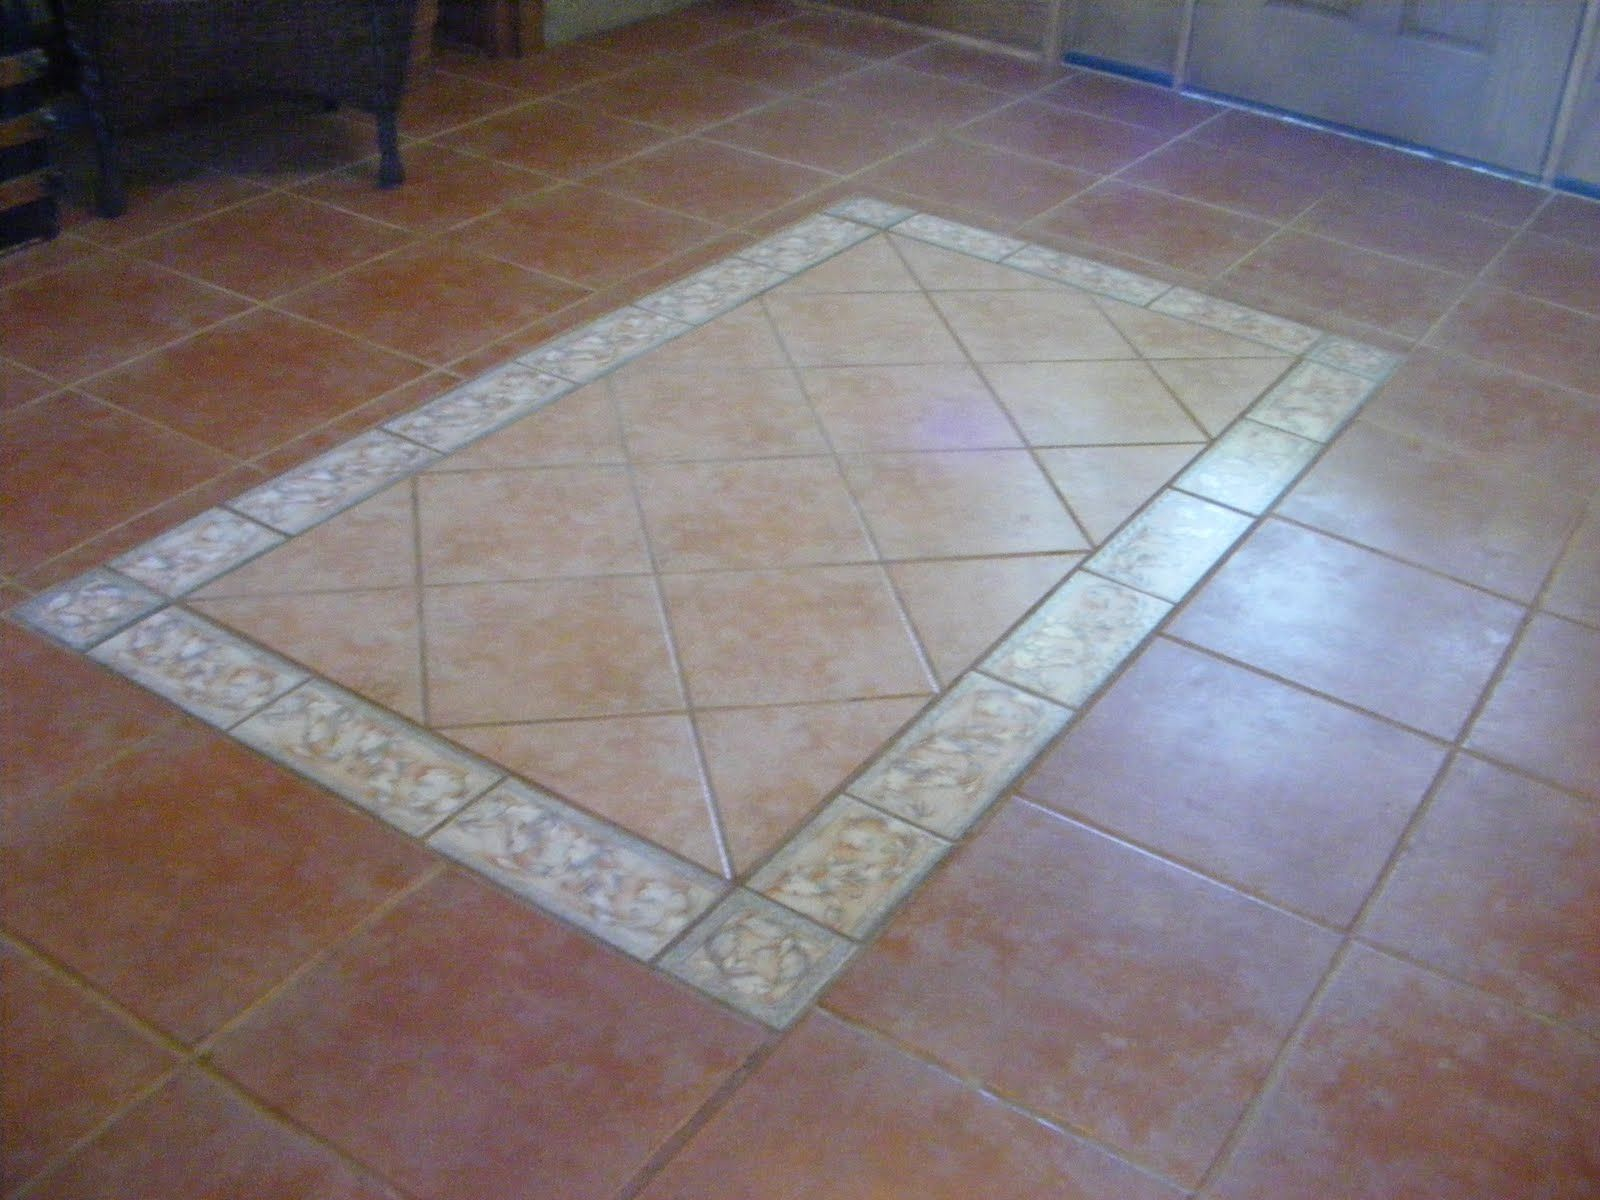 Decoration floor tile design patterns of new inspiration for new home interior floors - Small kitchen floor tile ideas ...